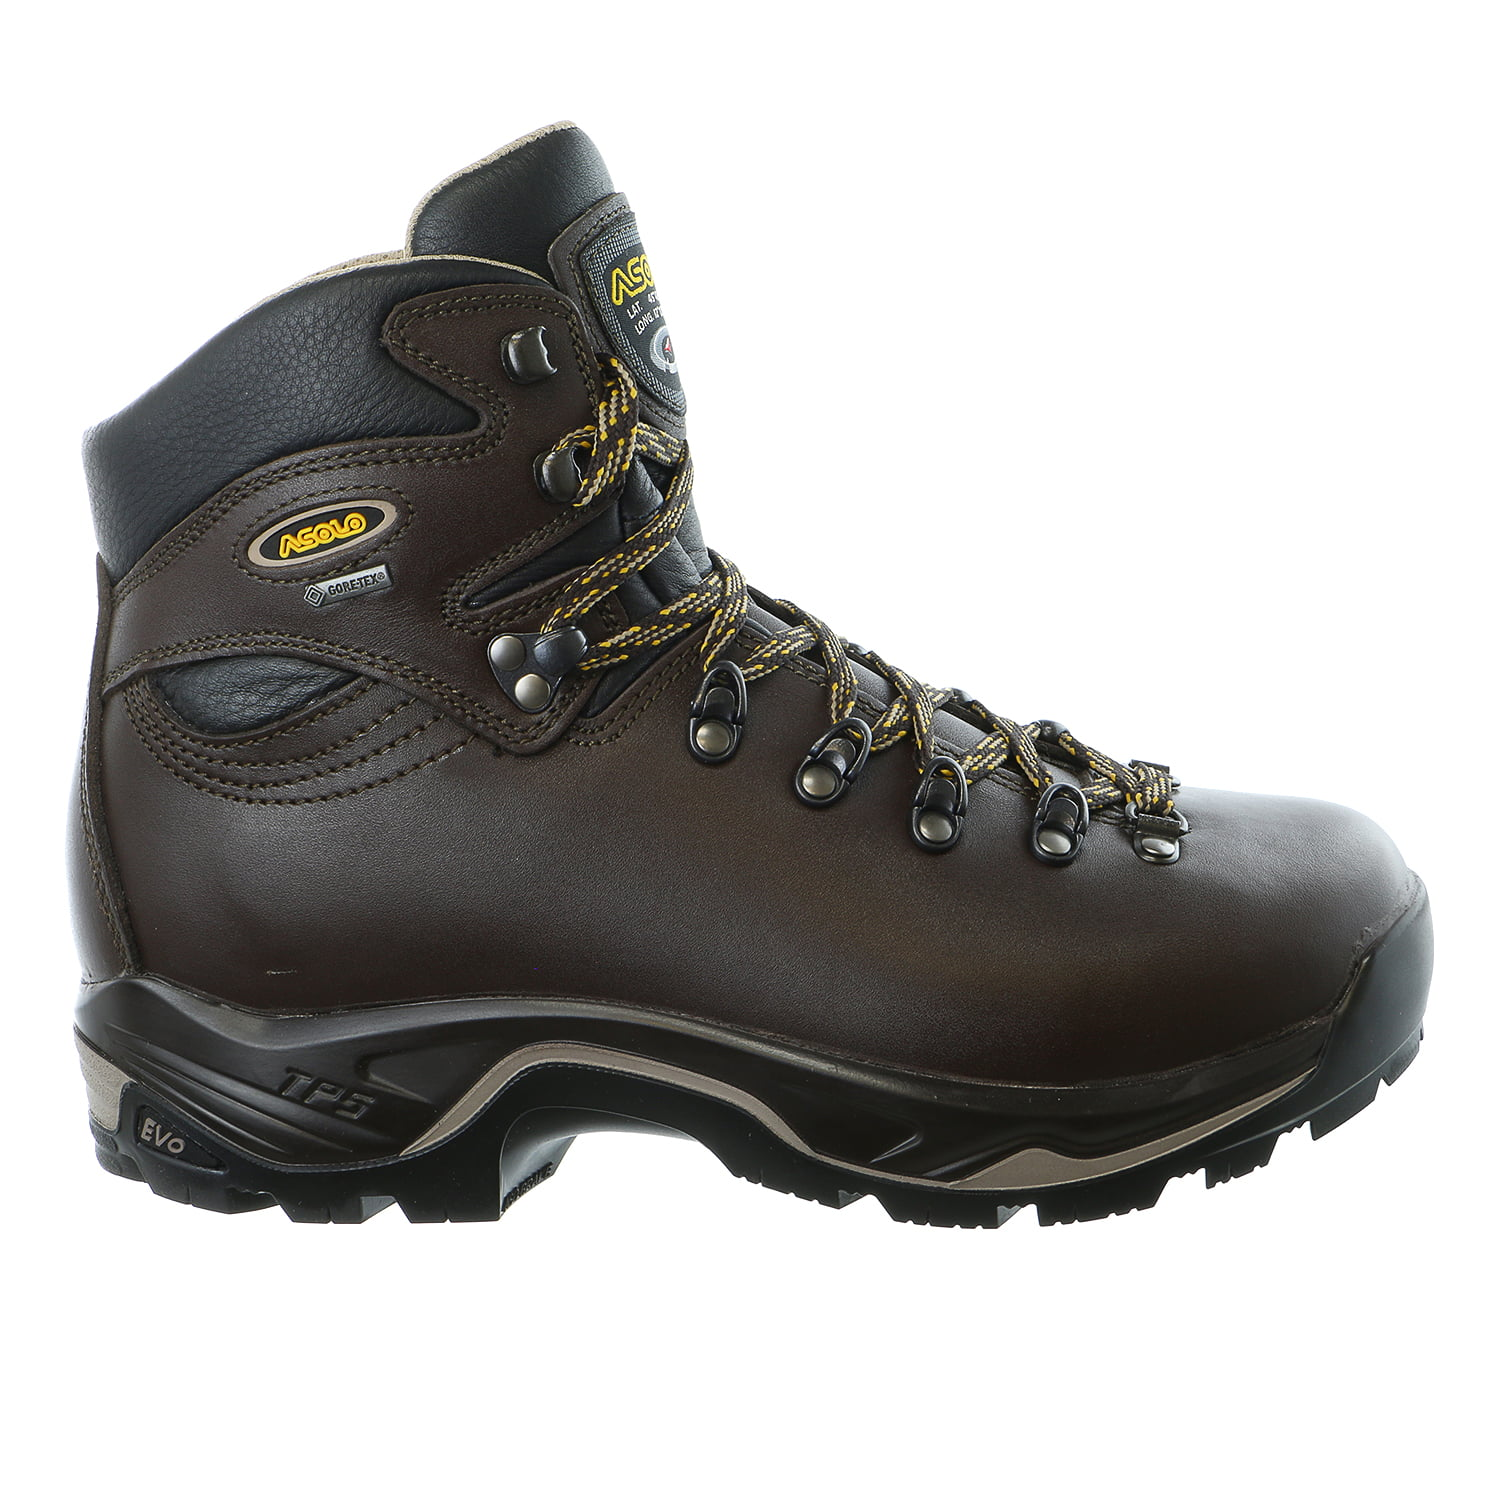 Asolo TPS 520 GV EVO MM GTX Lace Up Hilking Boot Shoe Mens by Asolo